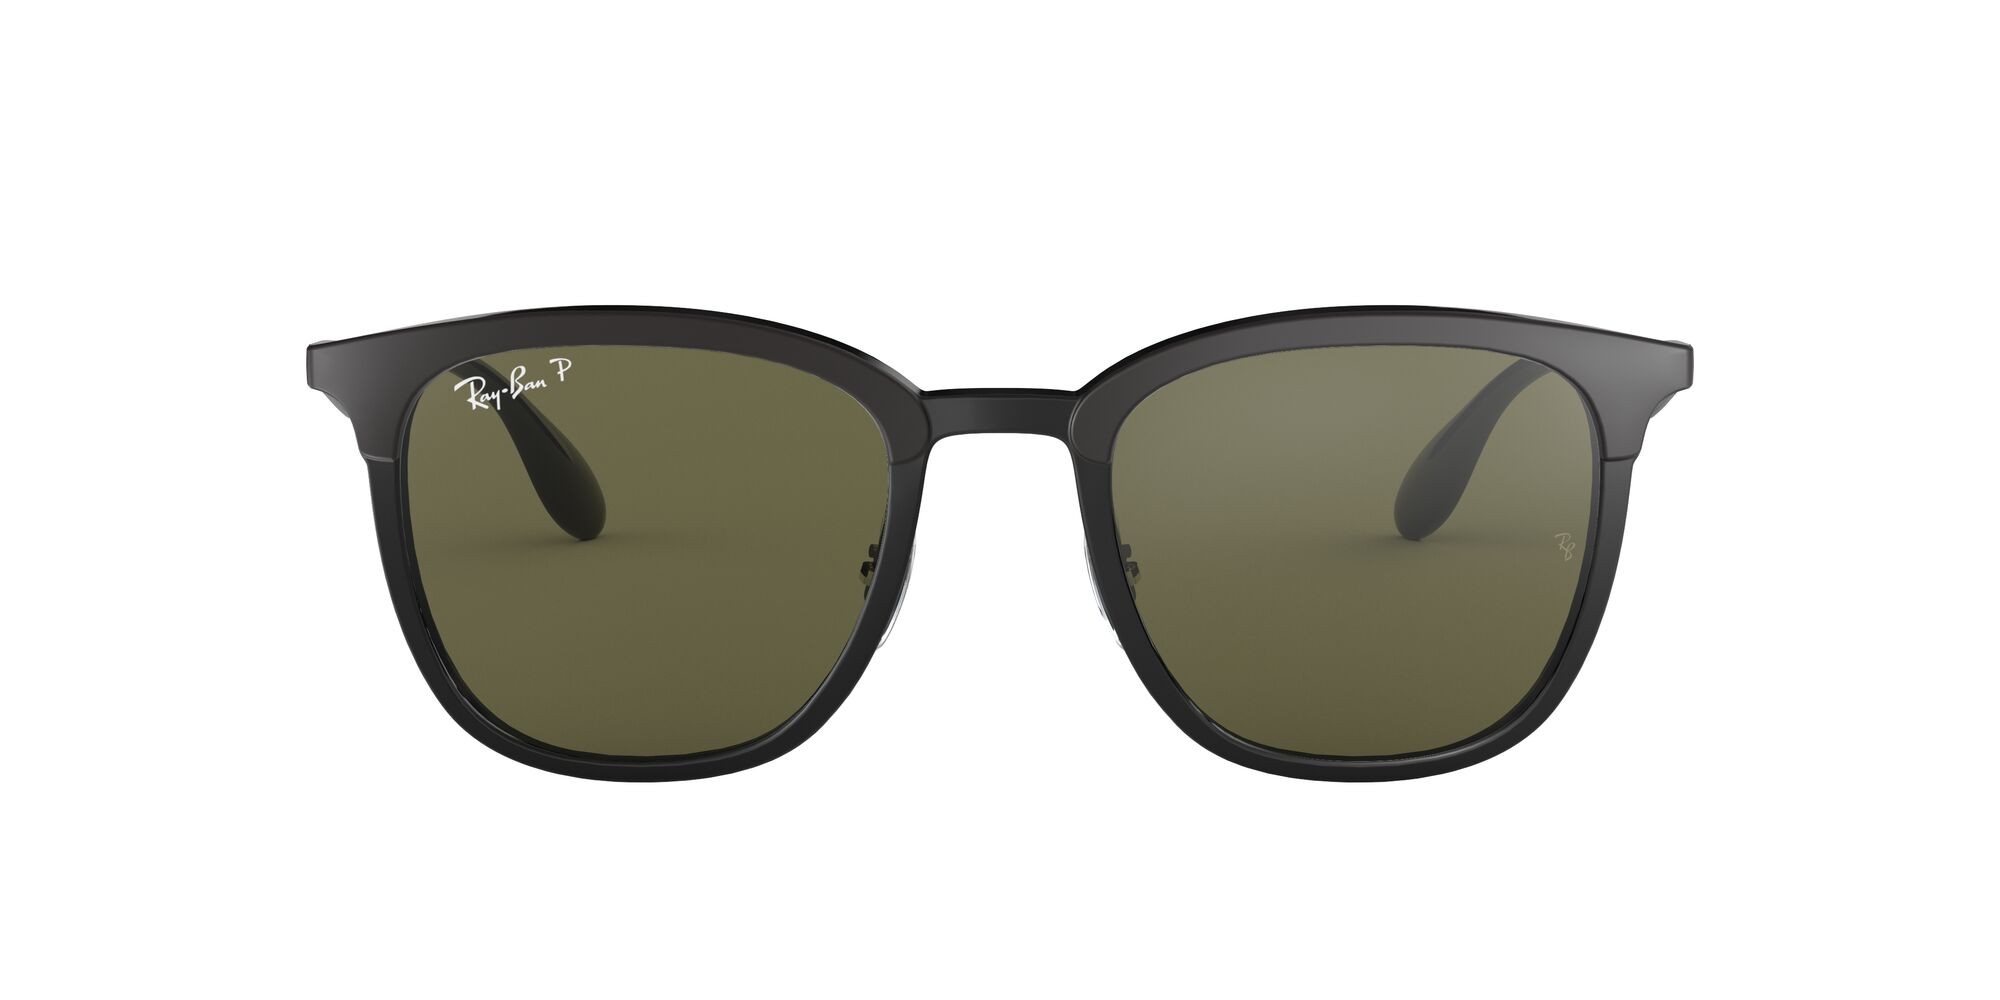 Front Ray-Ban Ray-Ban 0RB4278 62829A 51/21 Zwart/Groen